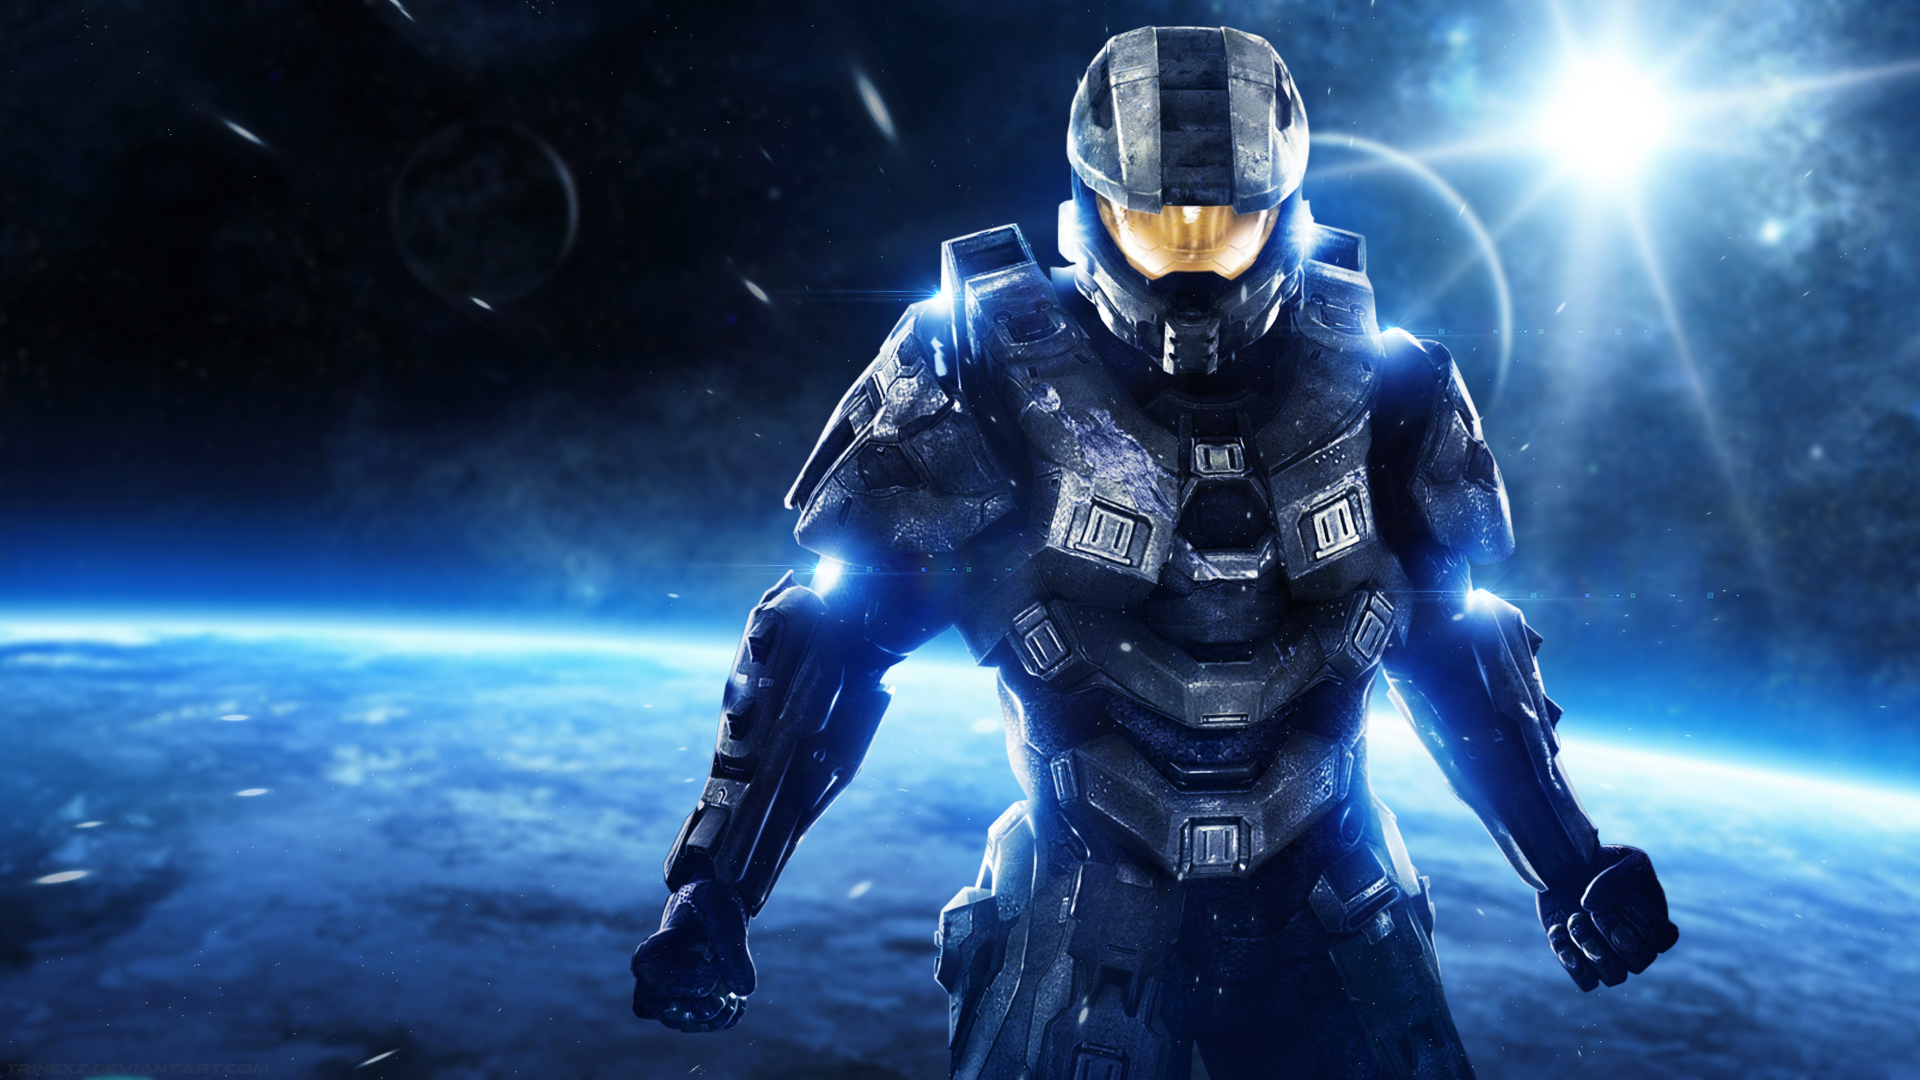 Halo Master Chief   Desktop Wallpaper by Trinexz 1920x1080